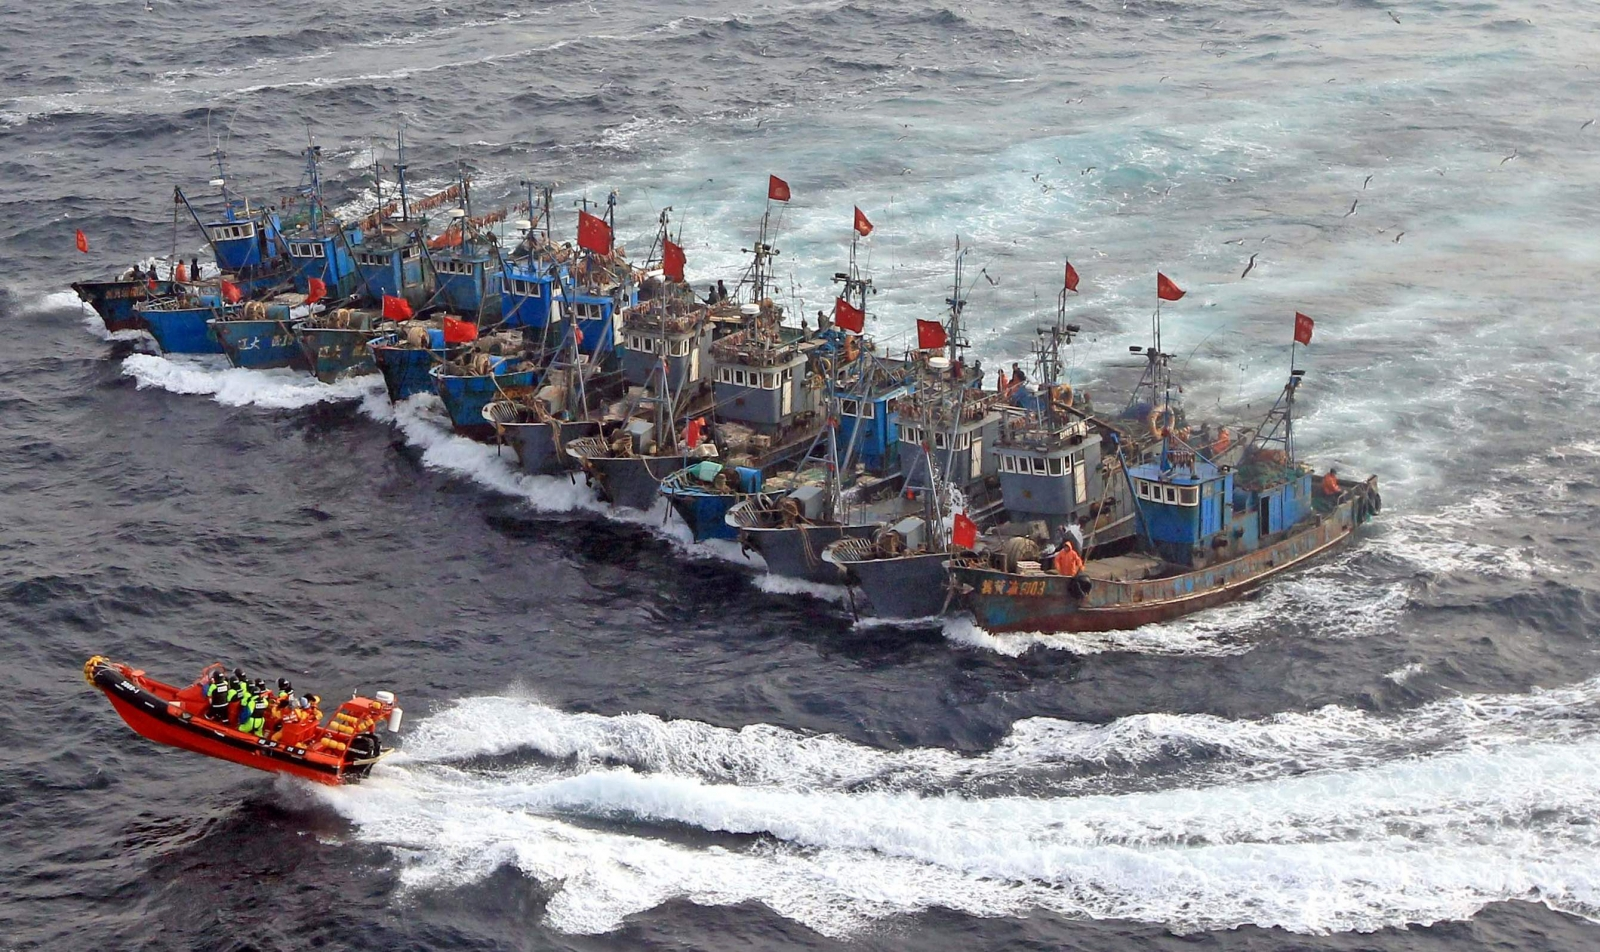 Yellow Sea Chinese Fish Boat Capital Killed in Confrontation with South Korean Coast Guard